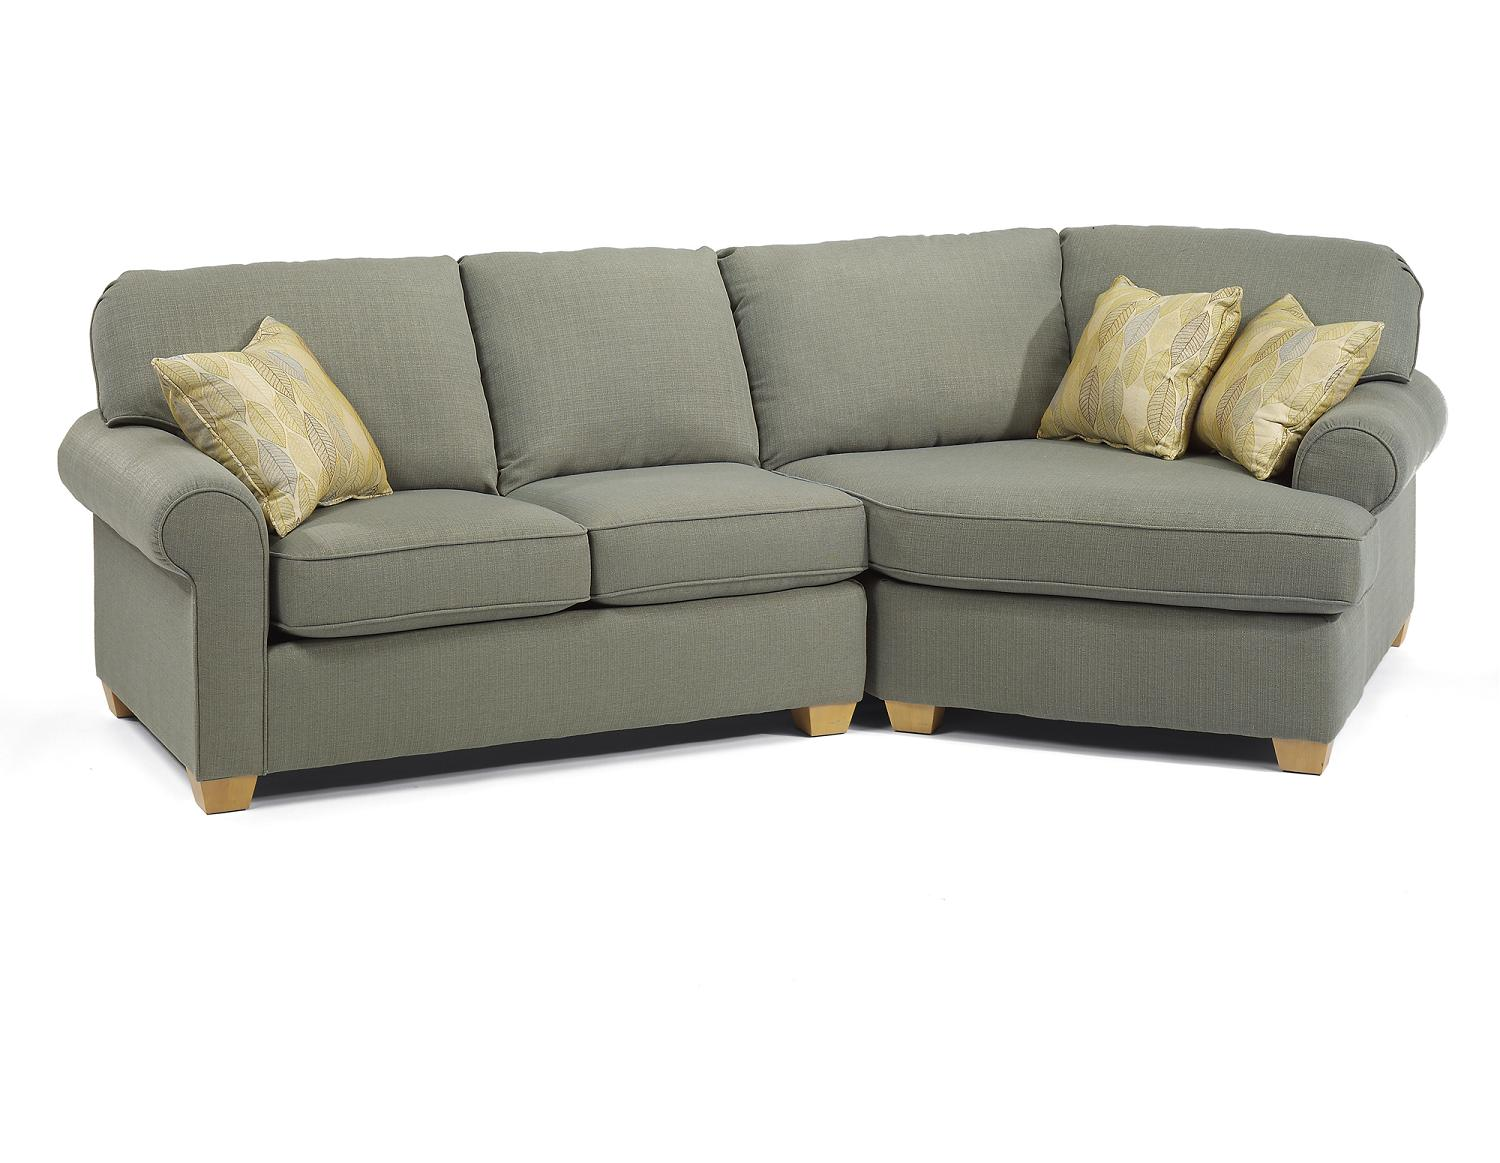 Cheap sectional sofas under 100 couch sofa ideas for Cheap sectional couch